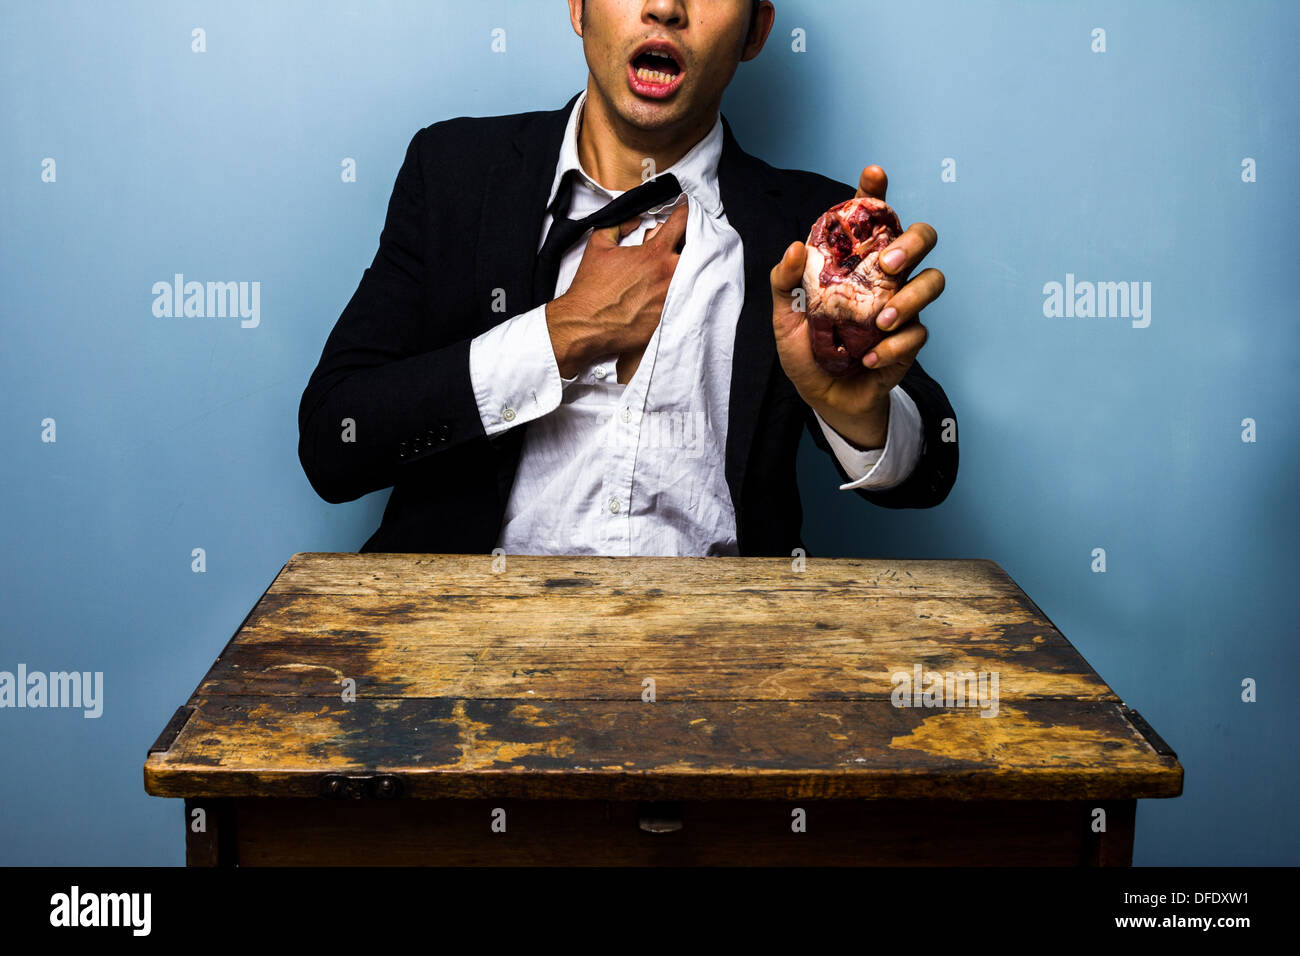 Young businessman is holding his chest in pain whilst holding a raw animal's heart in his other hand to symbolize - Stock Image